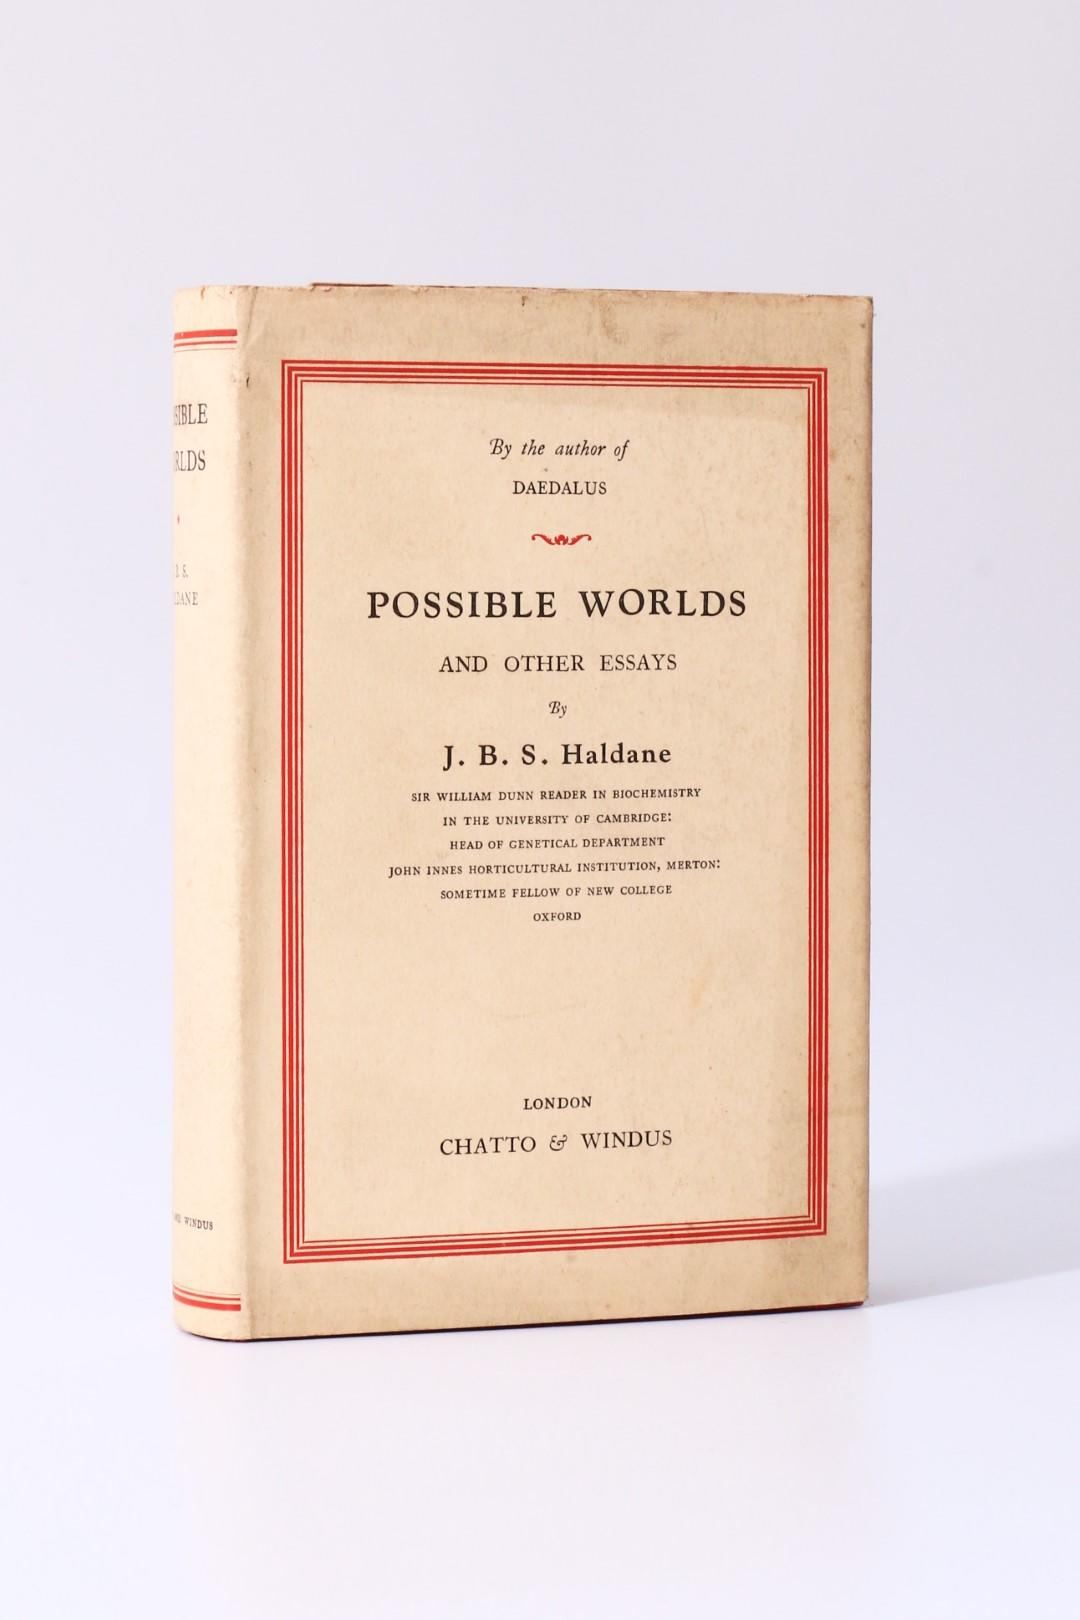 J.B.S. Haldane - Possible Worlds and Other Essays - Chatto & Windus, 1927, First Edition.